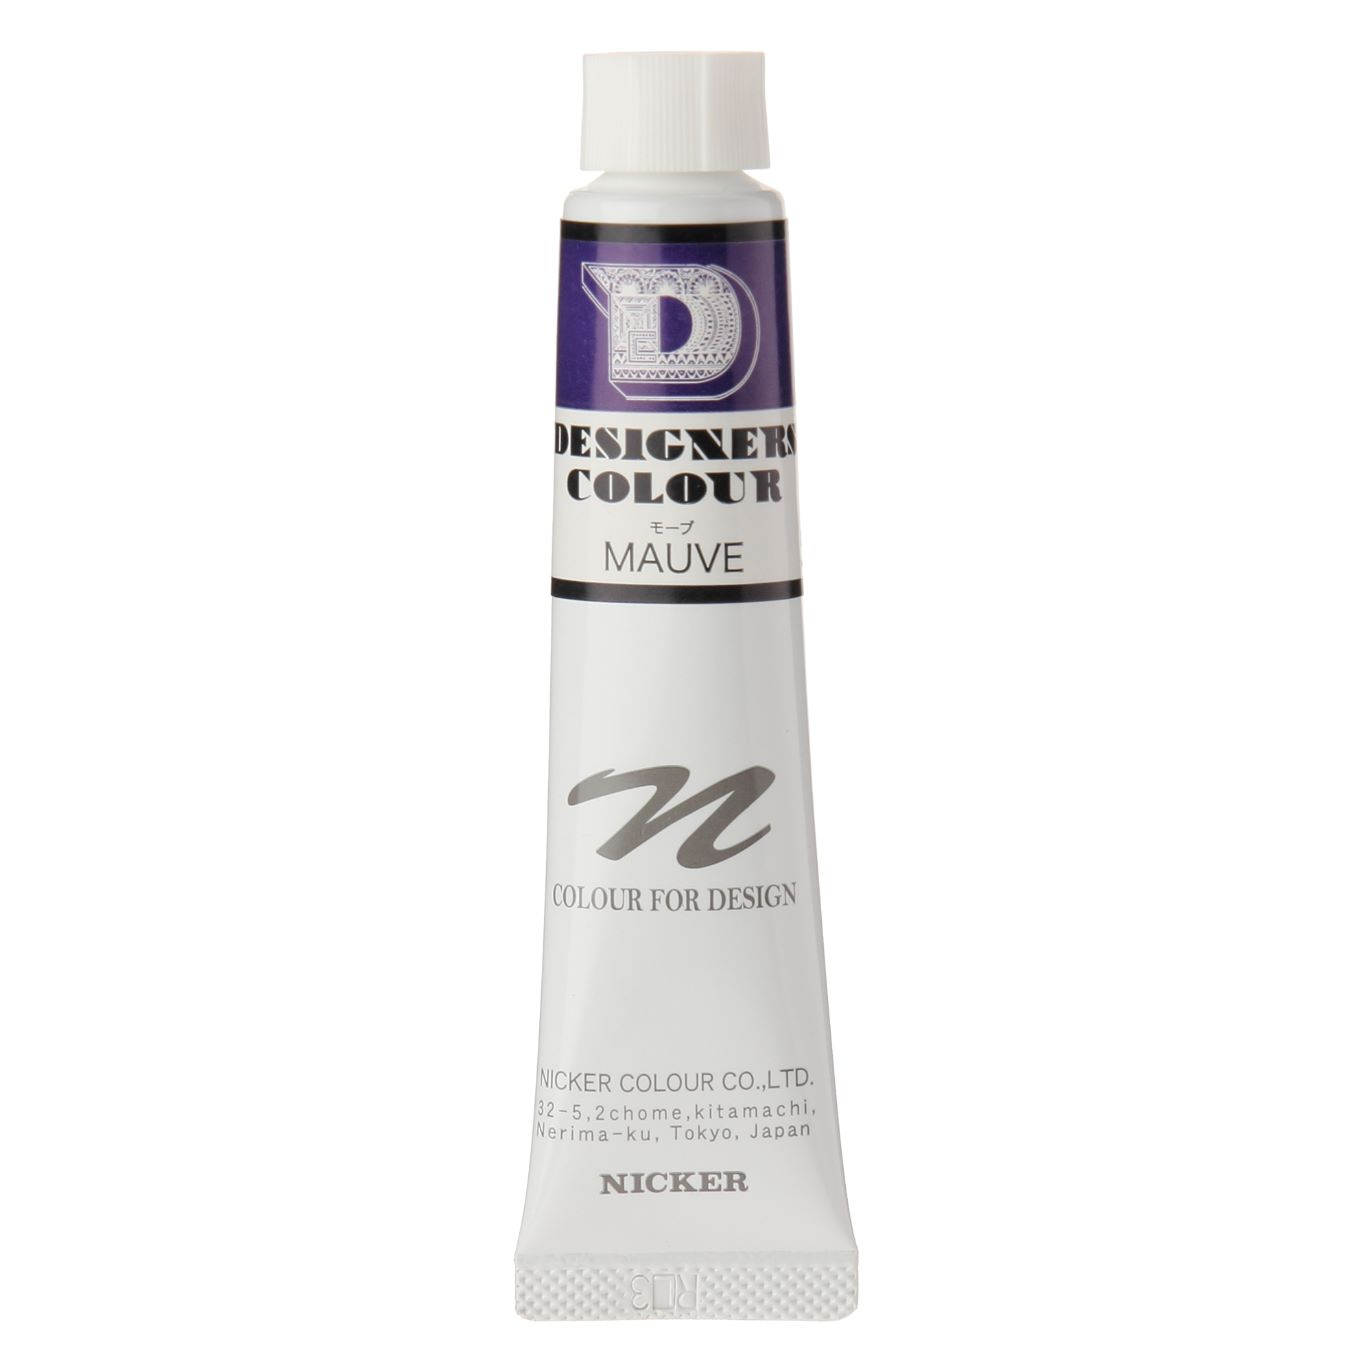 DESIGNERS COLOUR 20ml 533 MAUVE